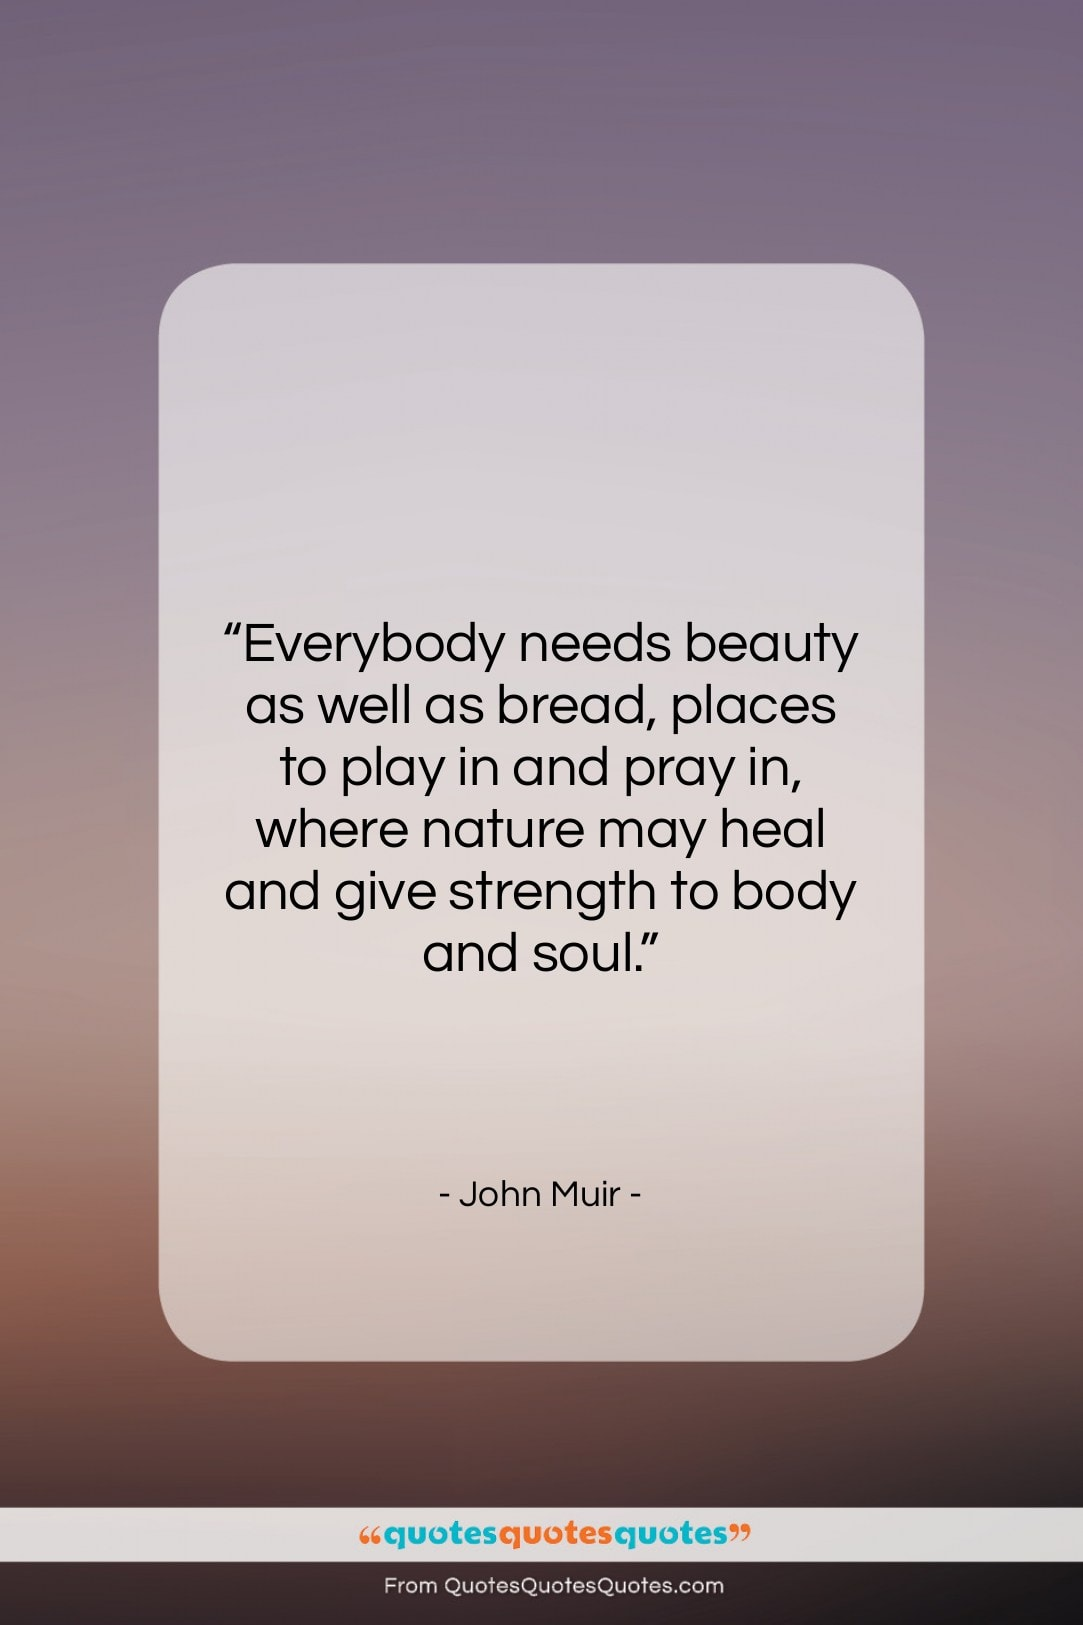 """John Muir quote: """"Everybody needs beauty as well as bread,…""""- at QuotesQuotesQuotes.com"""